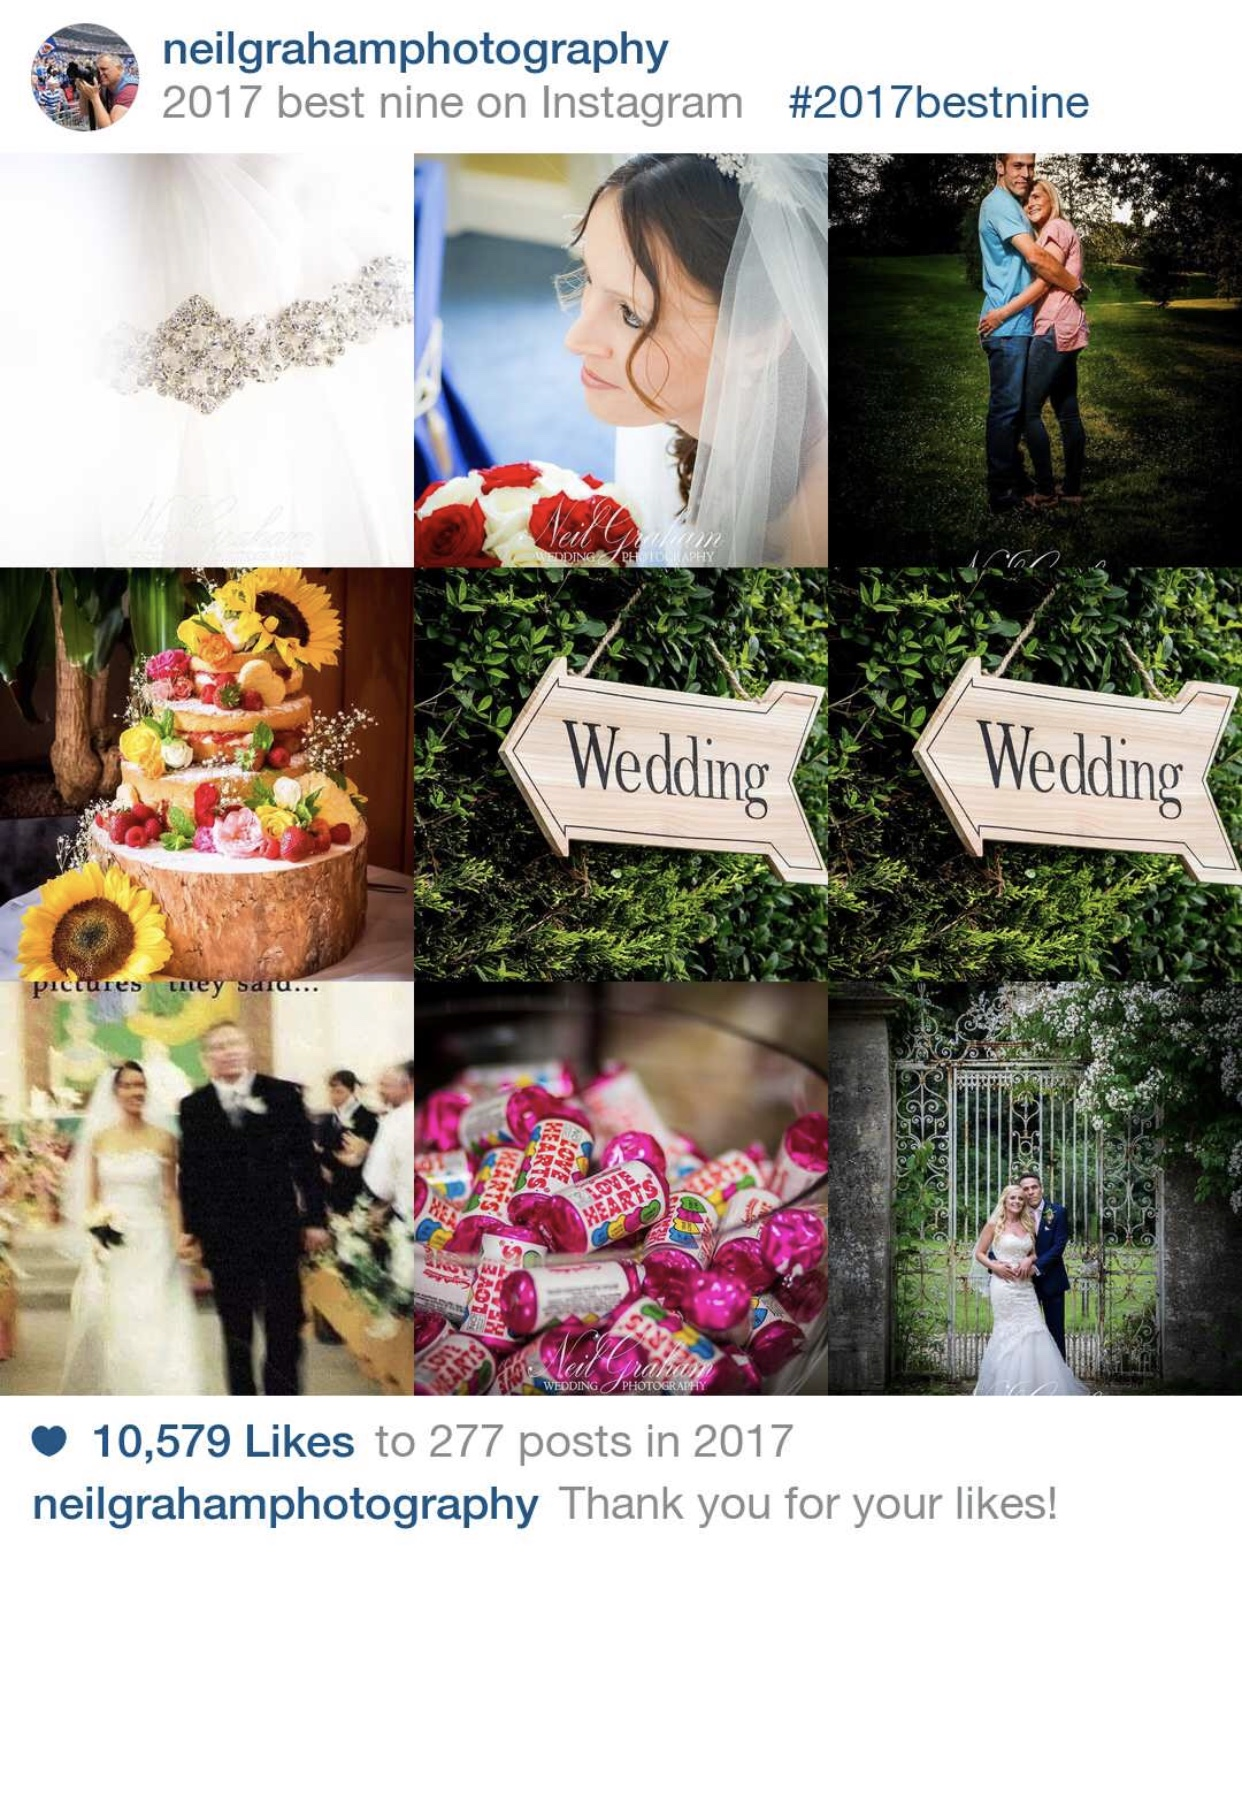 Best 9 photos on Instagram, over 10,000 likes.